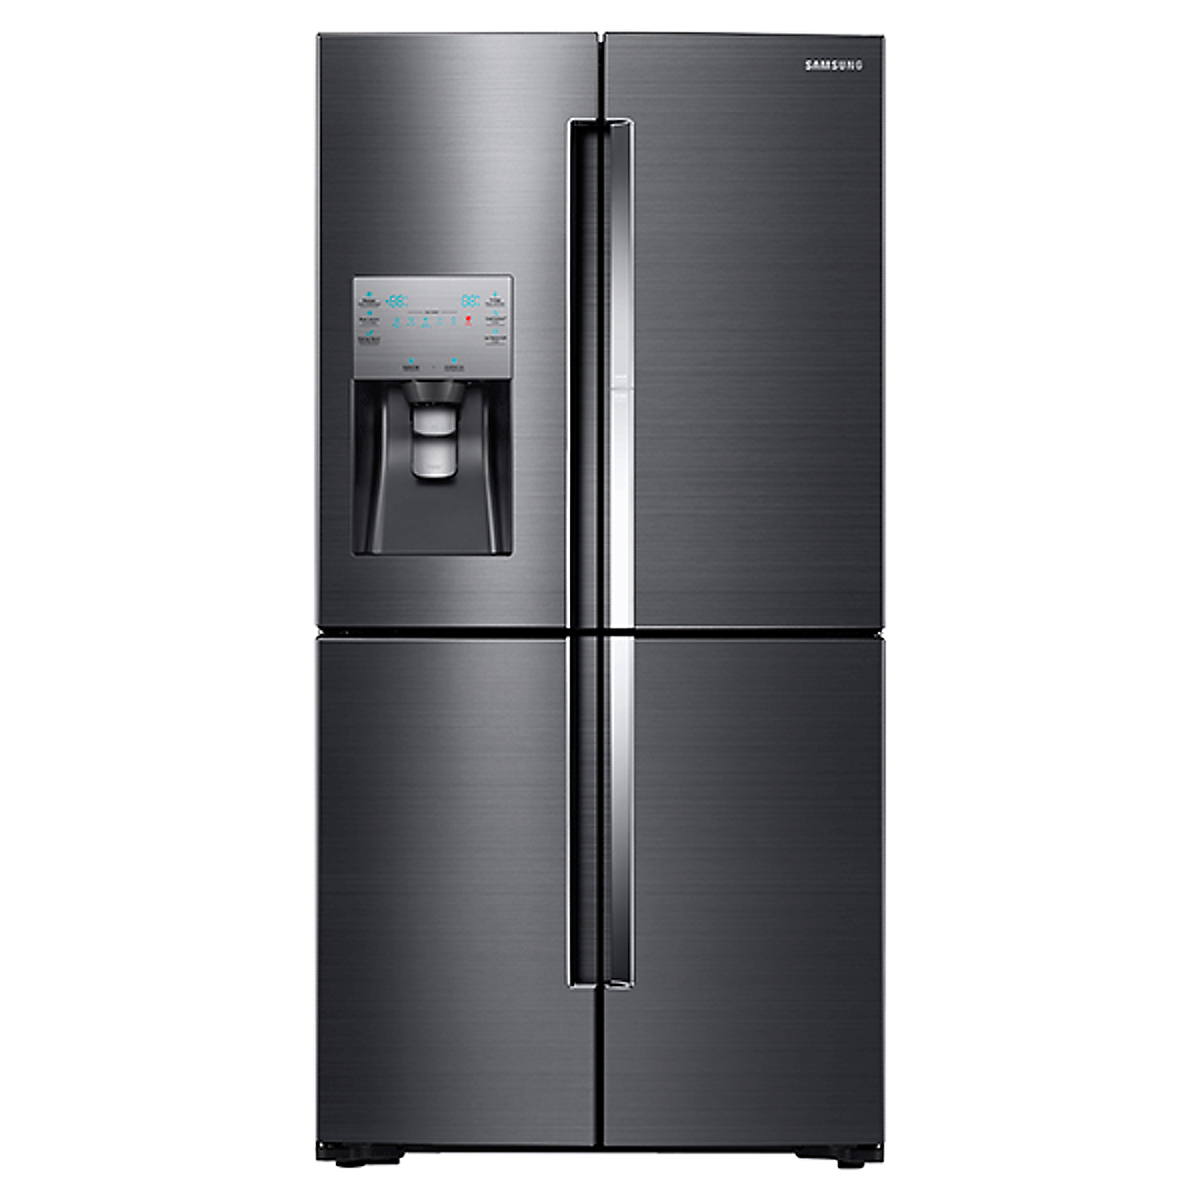 Rf28k9380sg Samsung 36 Quot 4 Door French Door Refrigerator